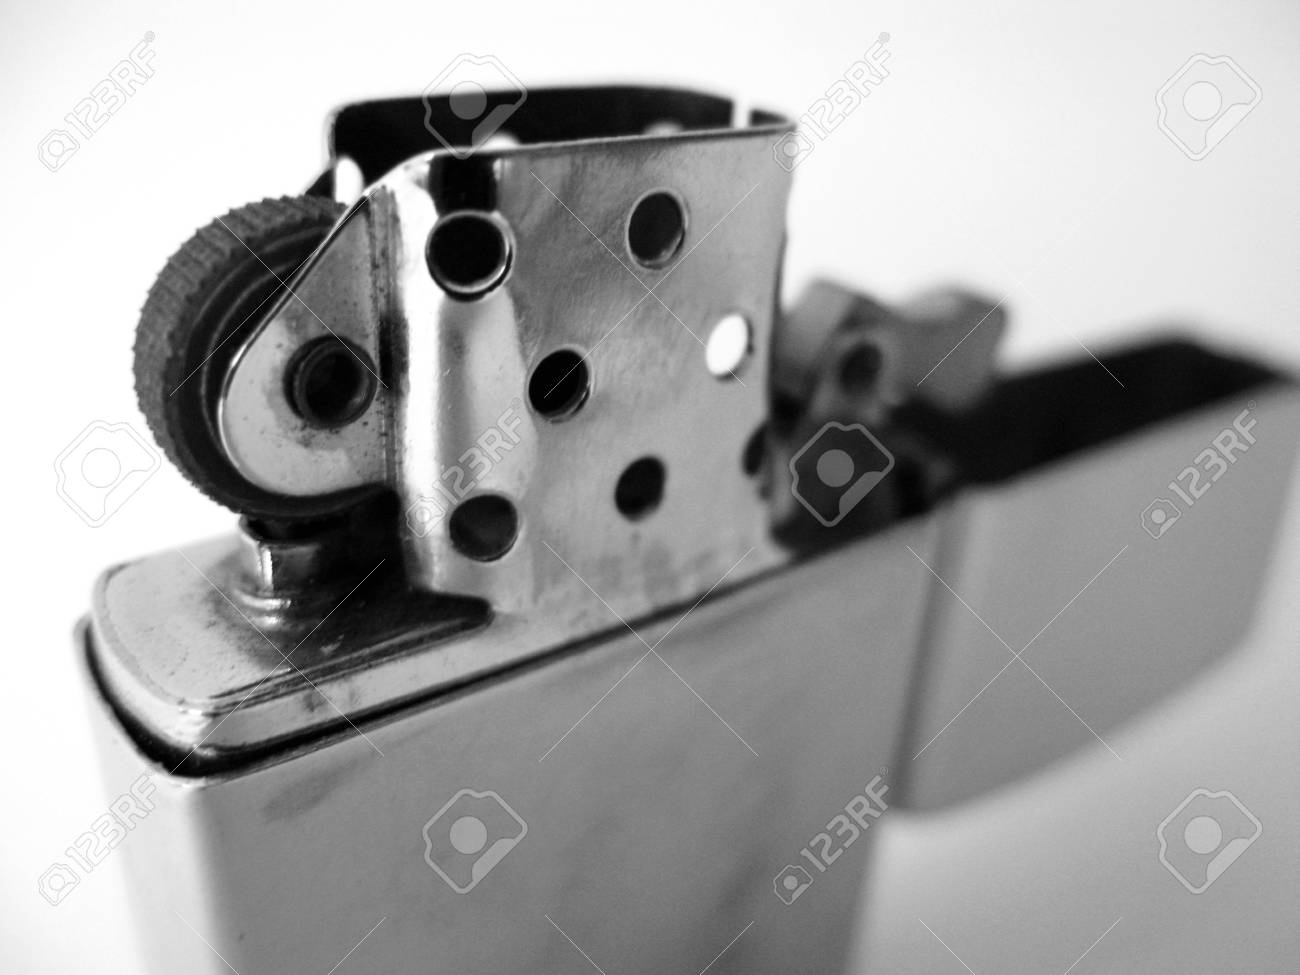 close-up of lighter on white background Stock Photo - 13457108